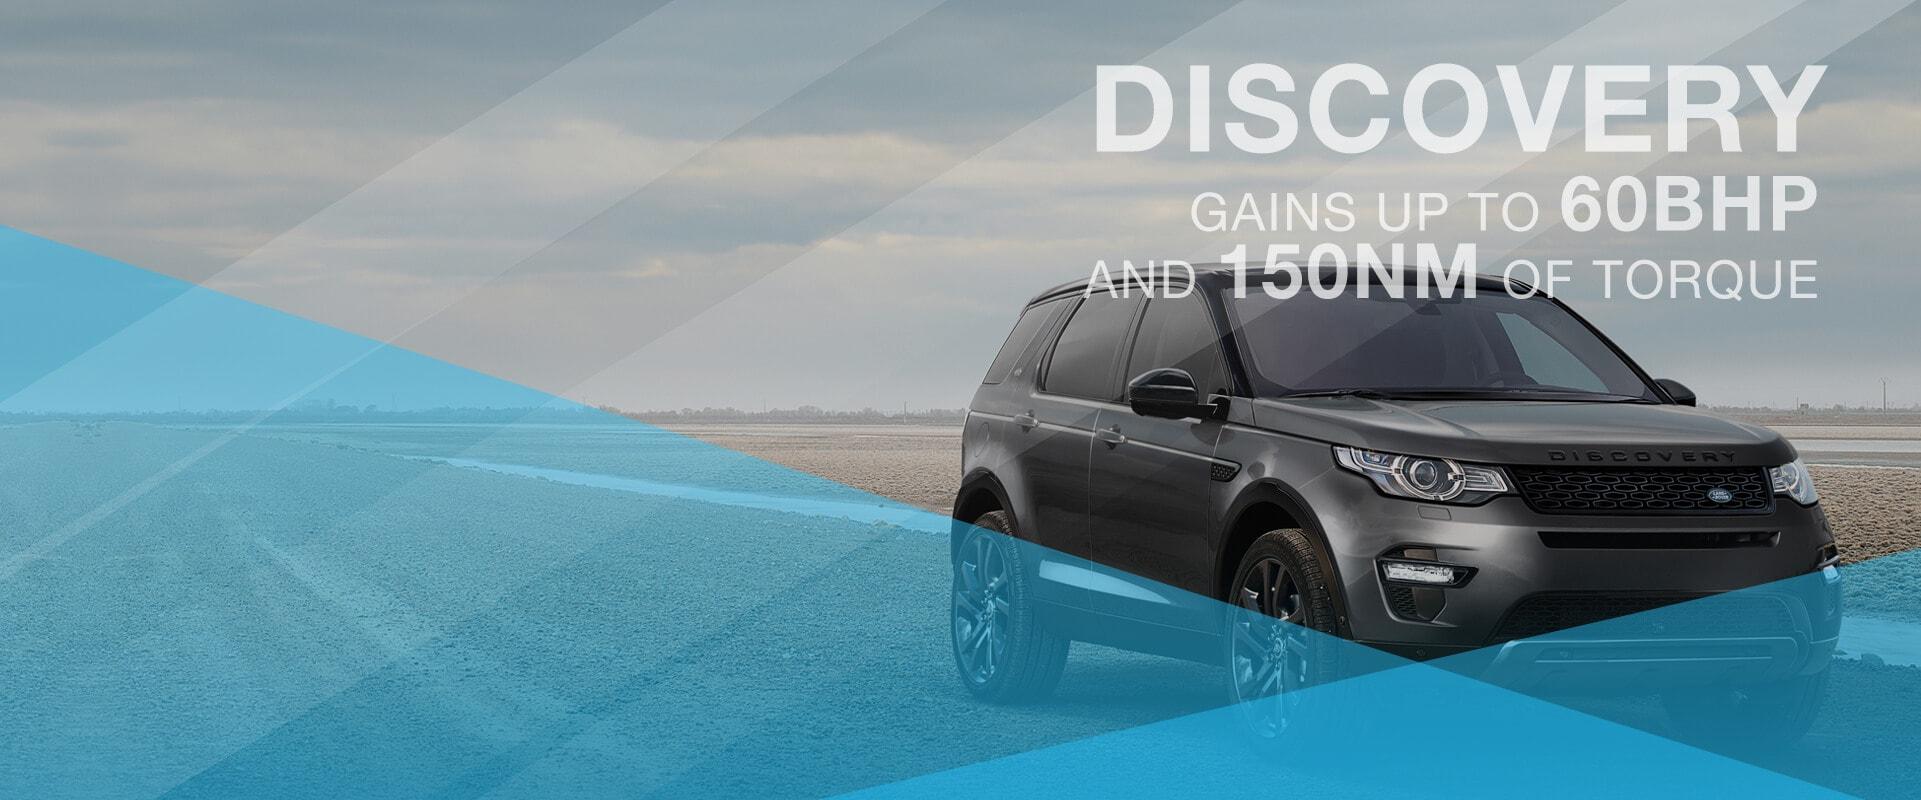 Discovery gains up to 60BHP and 150NM of torque